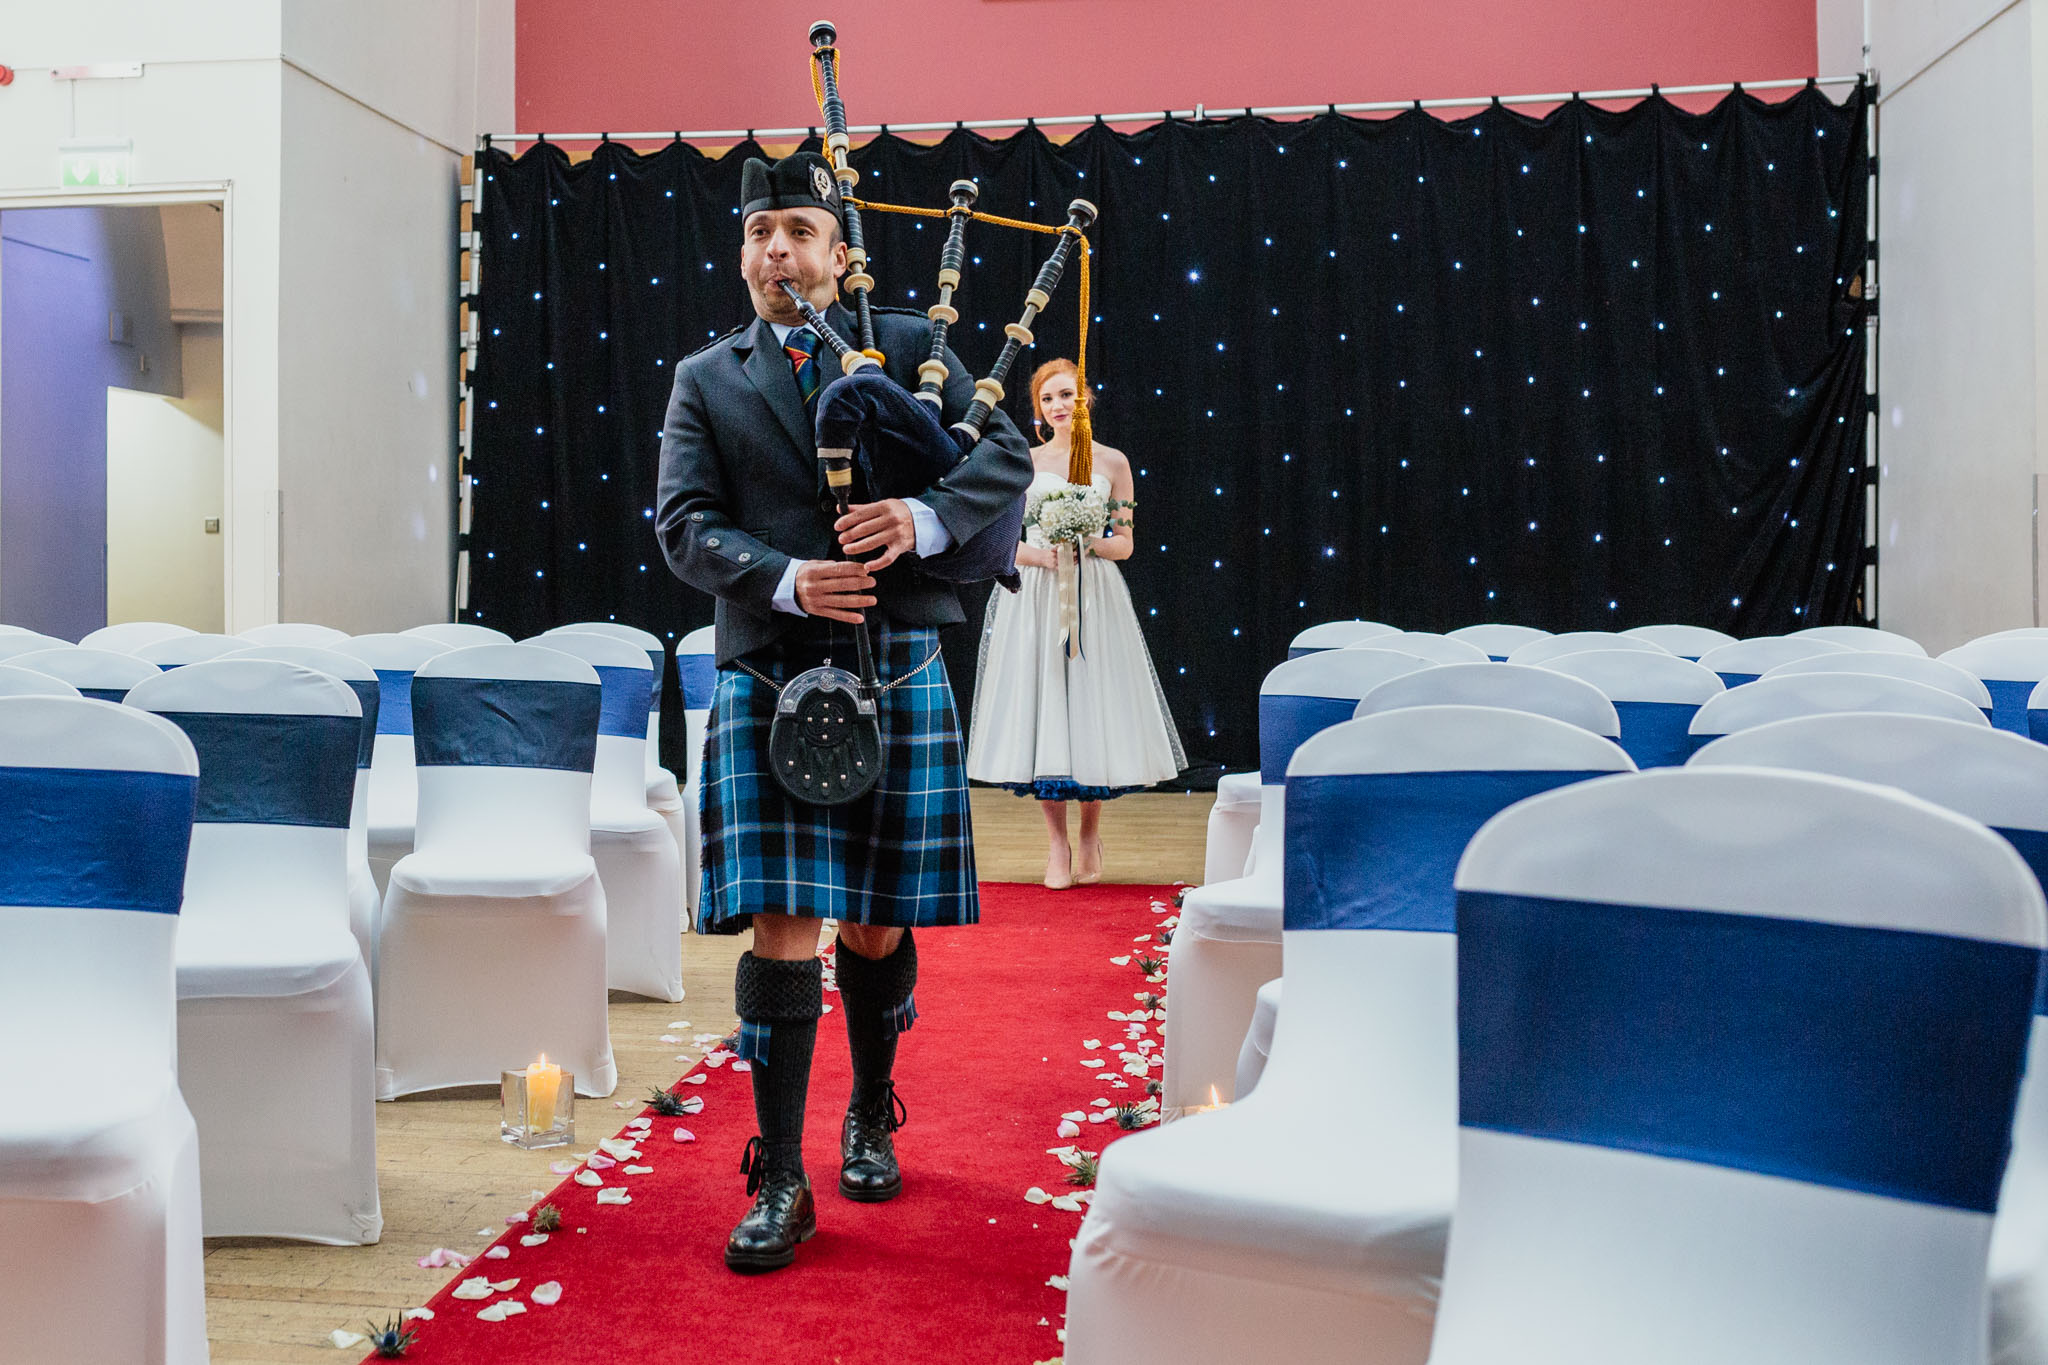 Wedding Pipers at The National Piping Centre